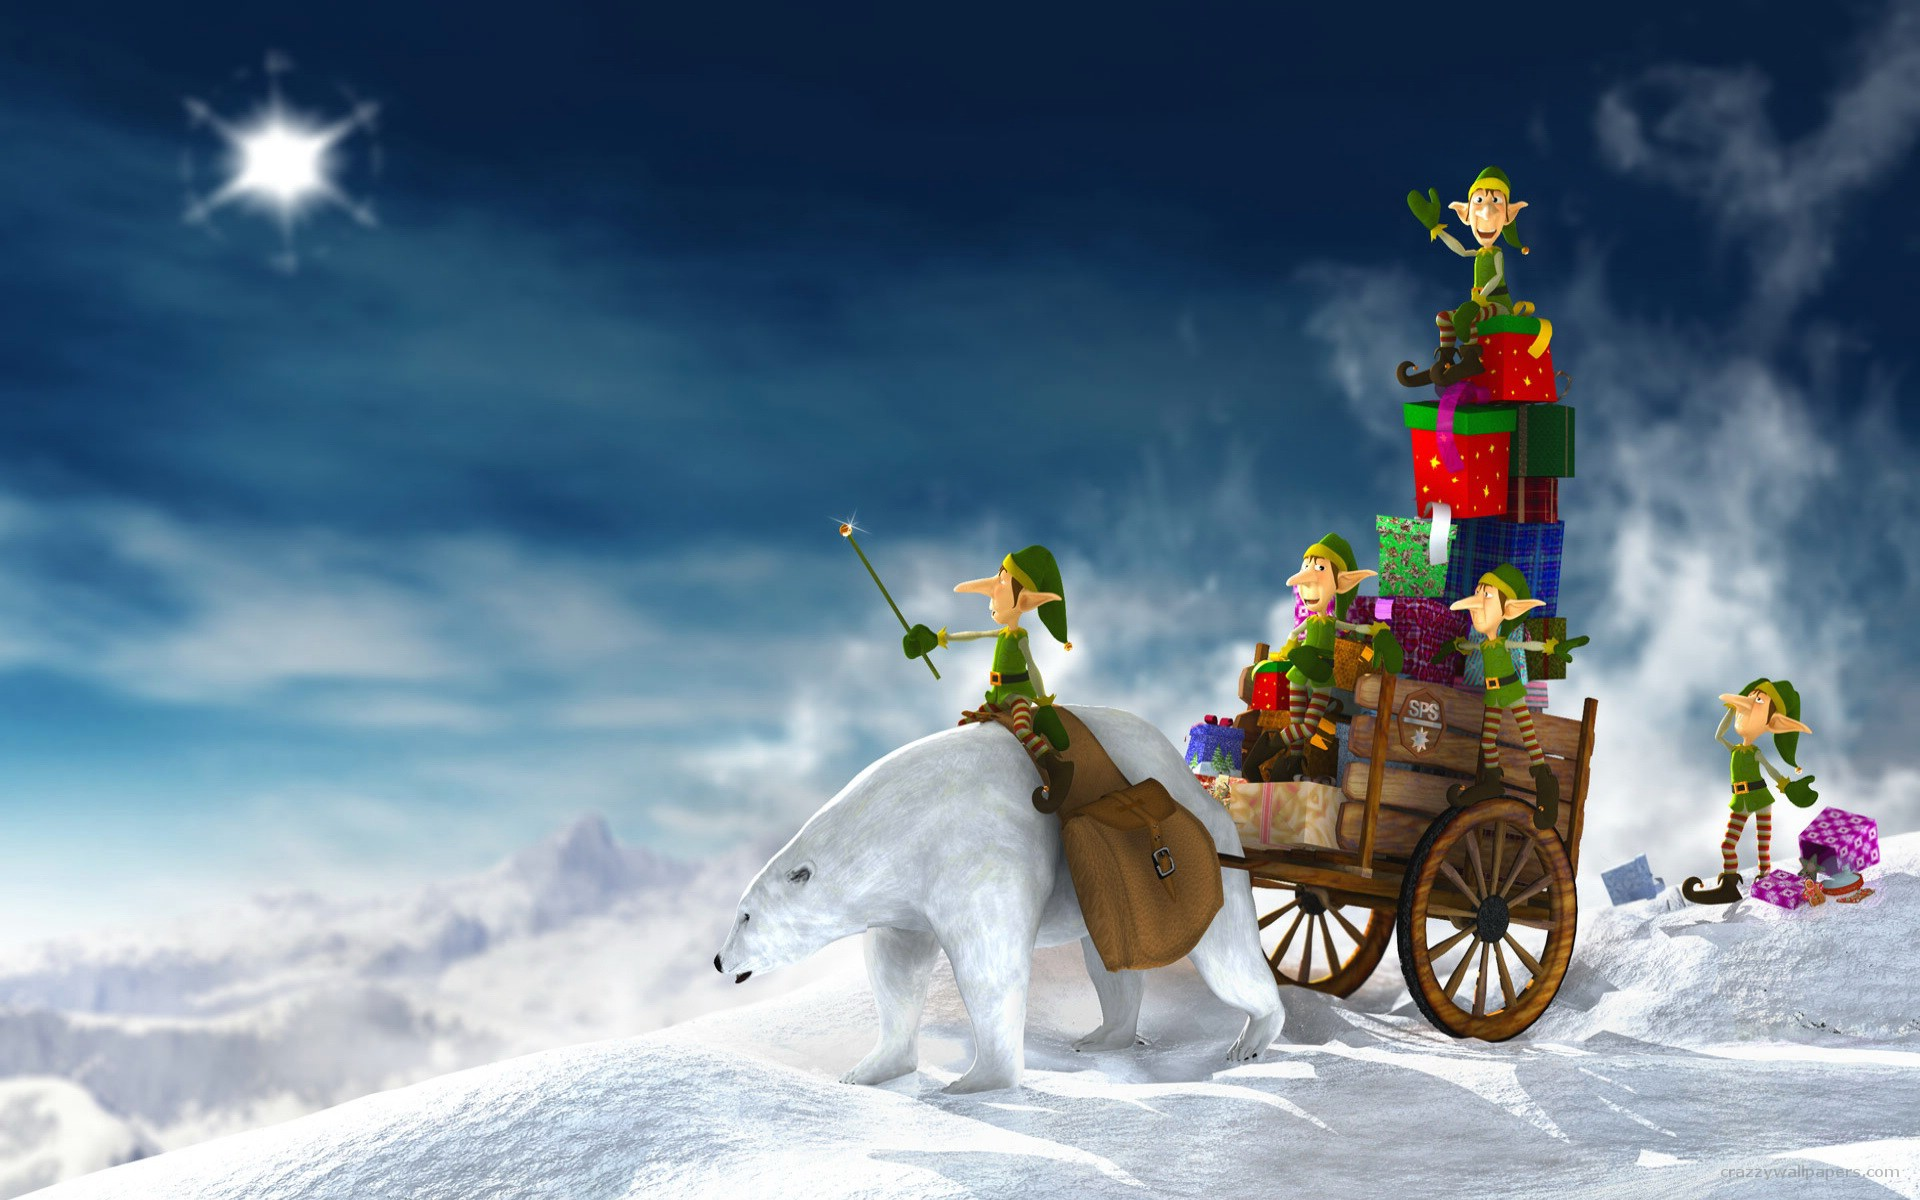 Merry Christmas Background 2014 1920x1200